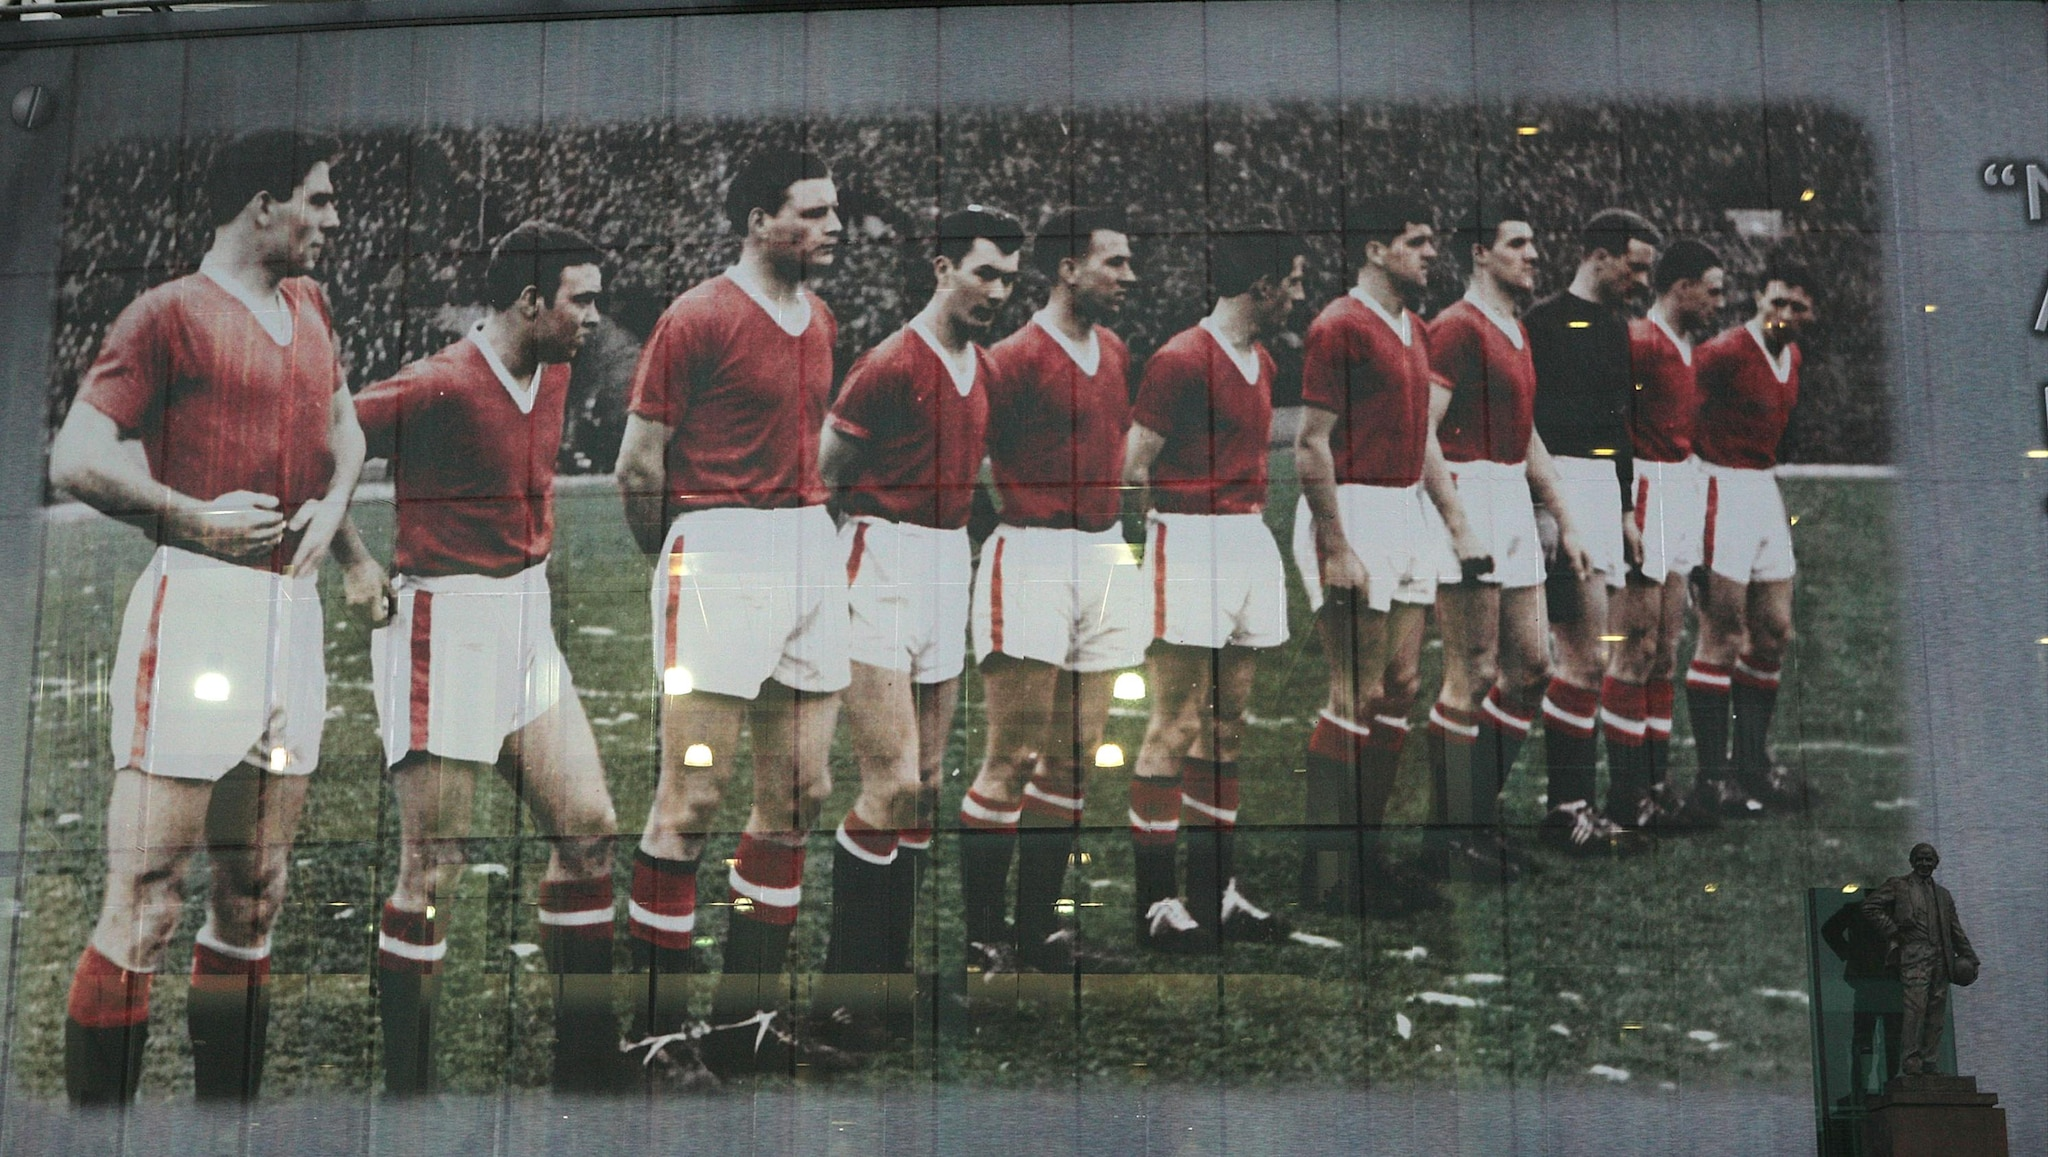 Anniversary of the air disaster Manchester_united_munich_1958_-_tribute_mural_-old_trafford